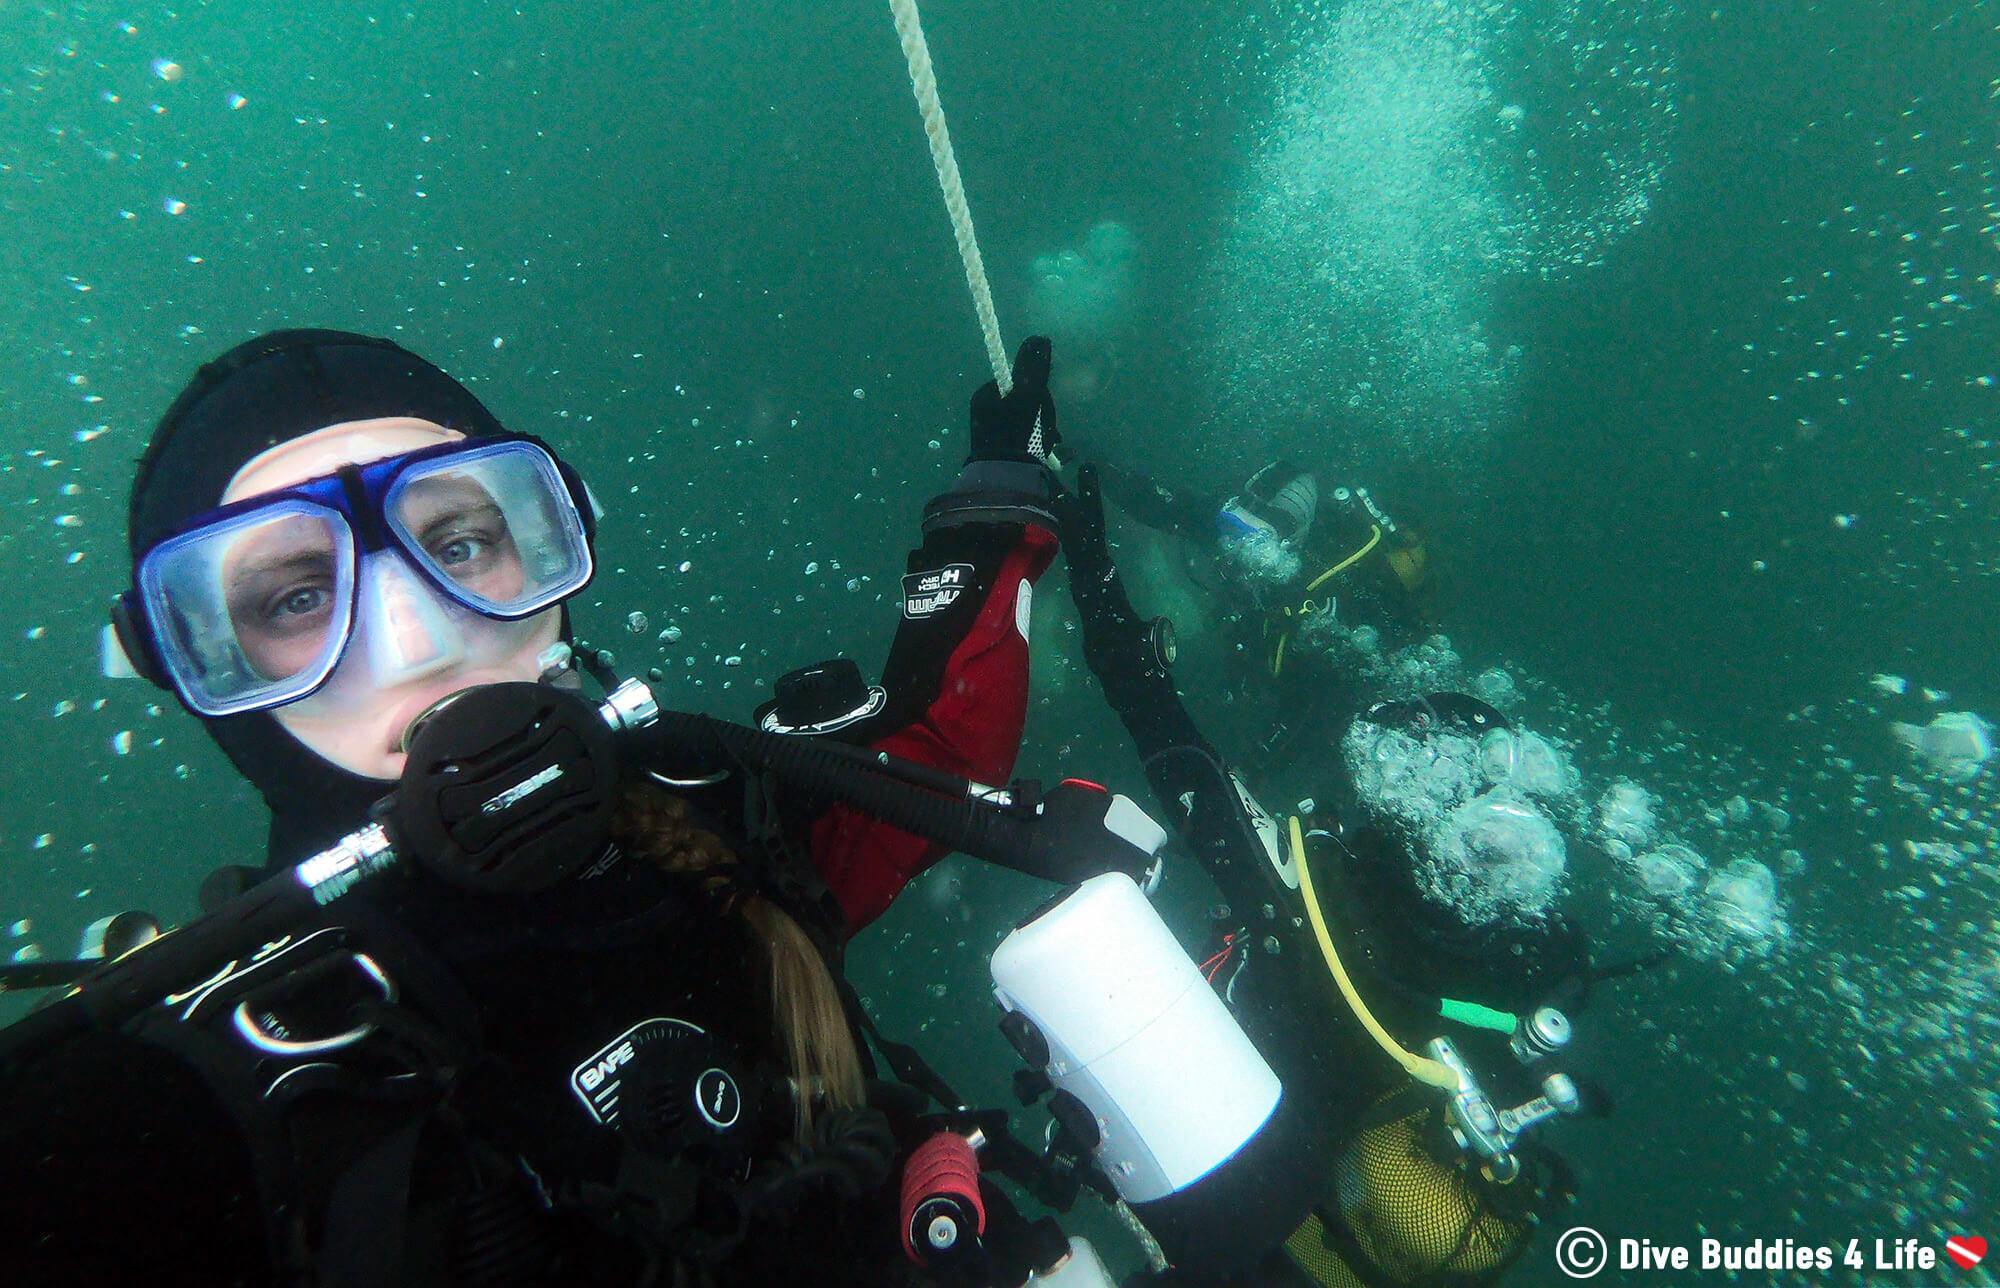 Ali Going Down The Underwater Rope In Her Dive Gear